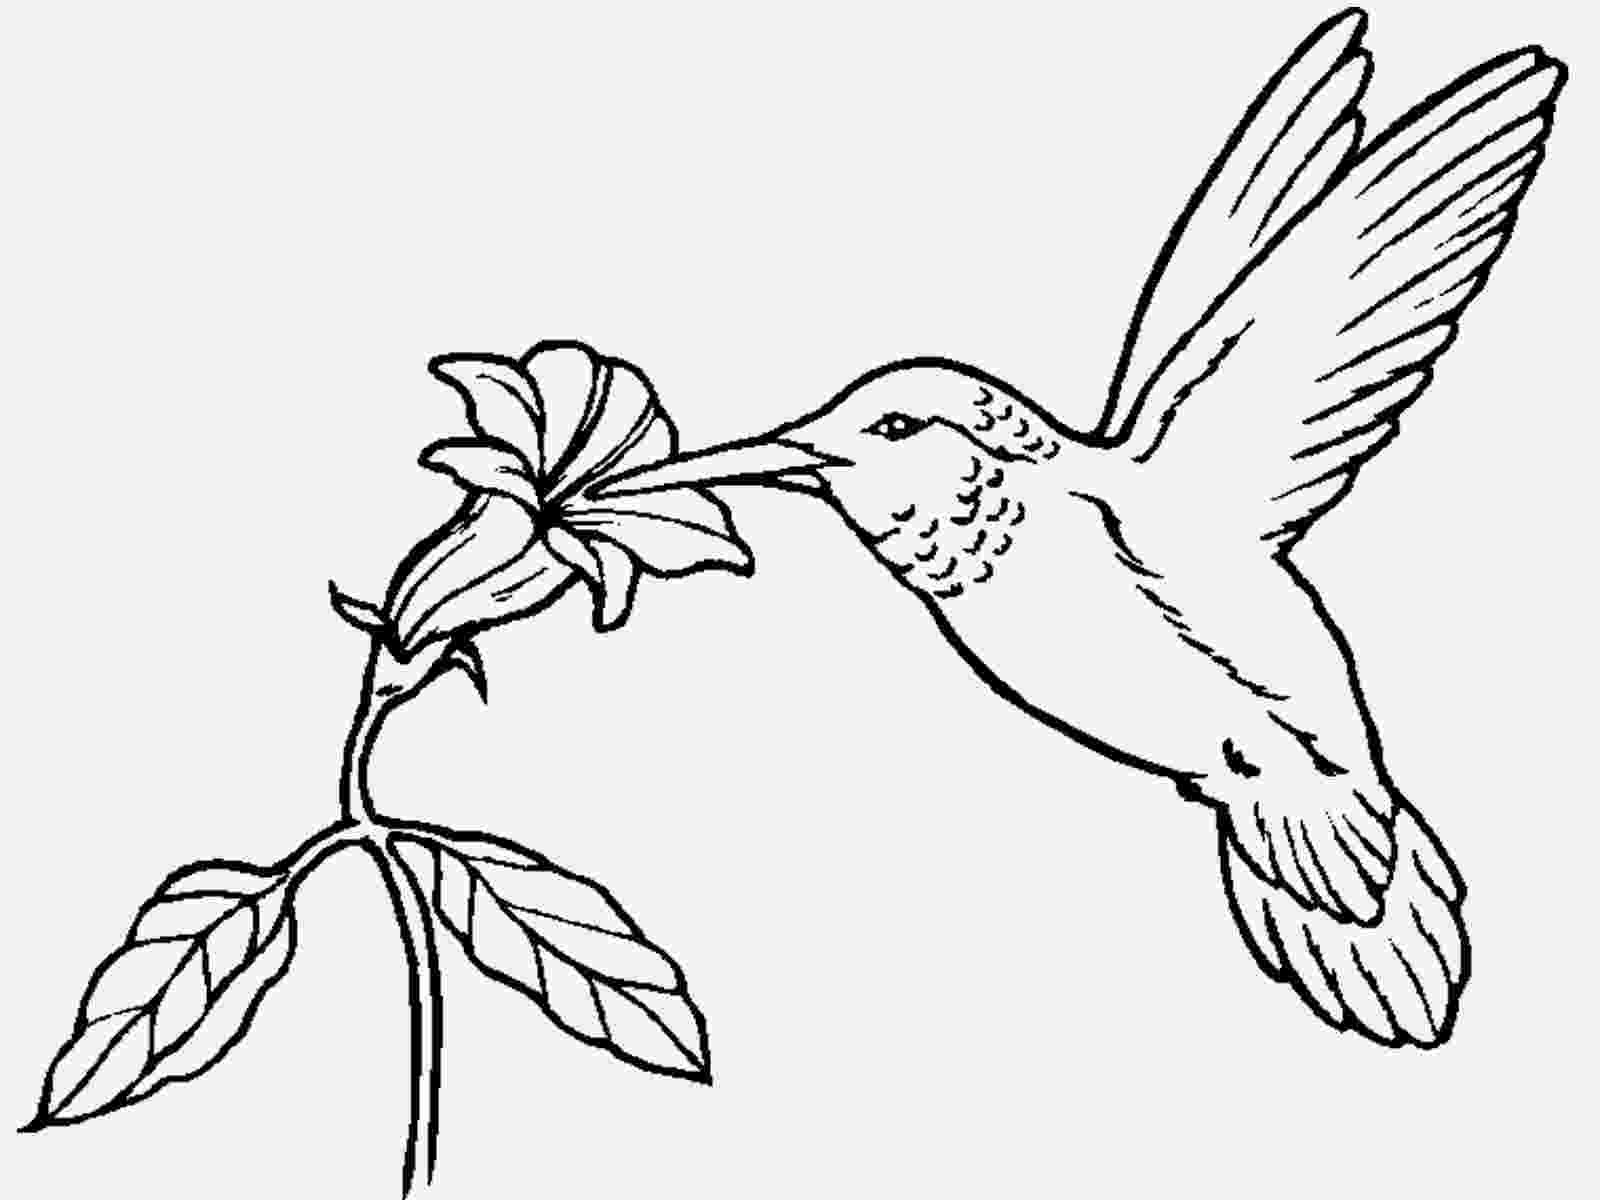 bird coloring pages to print parrot coloring pages download and print parrot coloring bird coloring print pages to